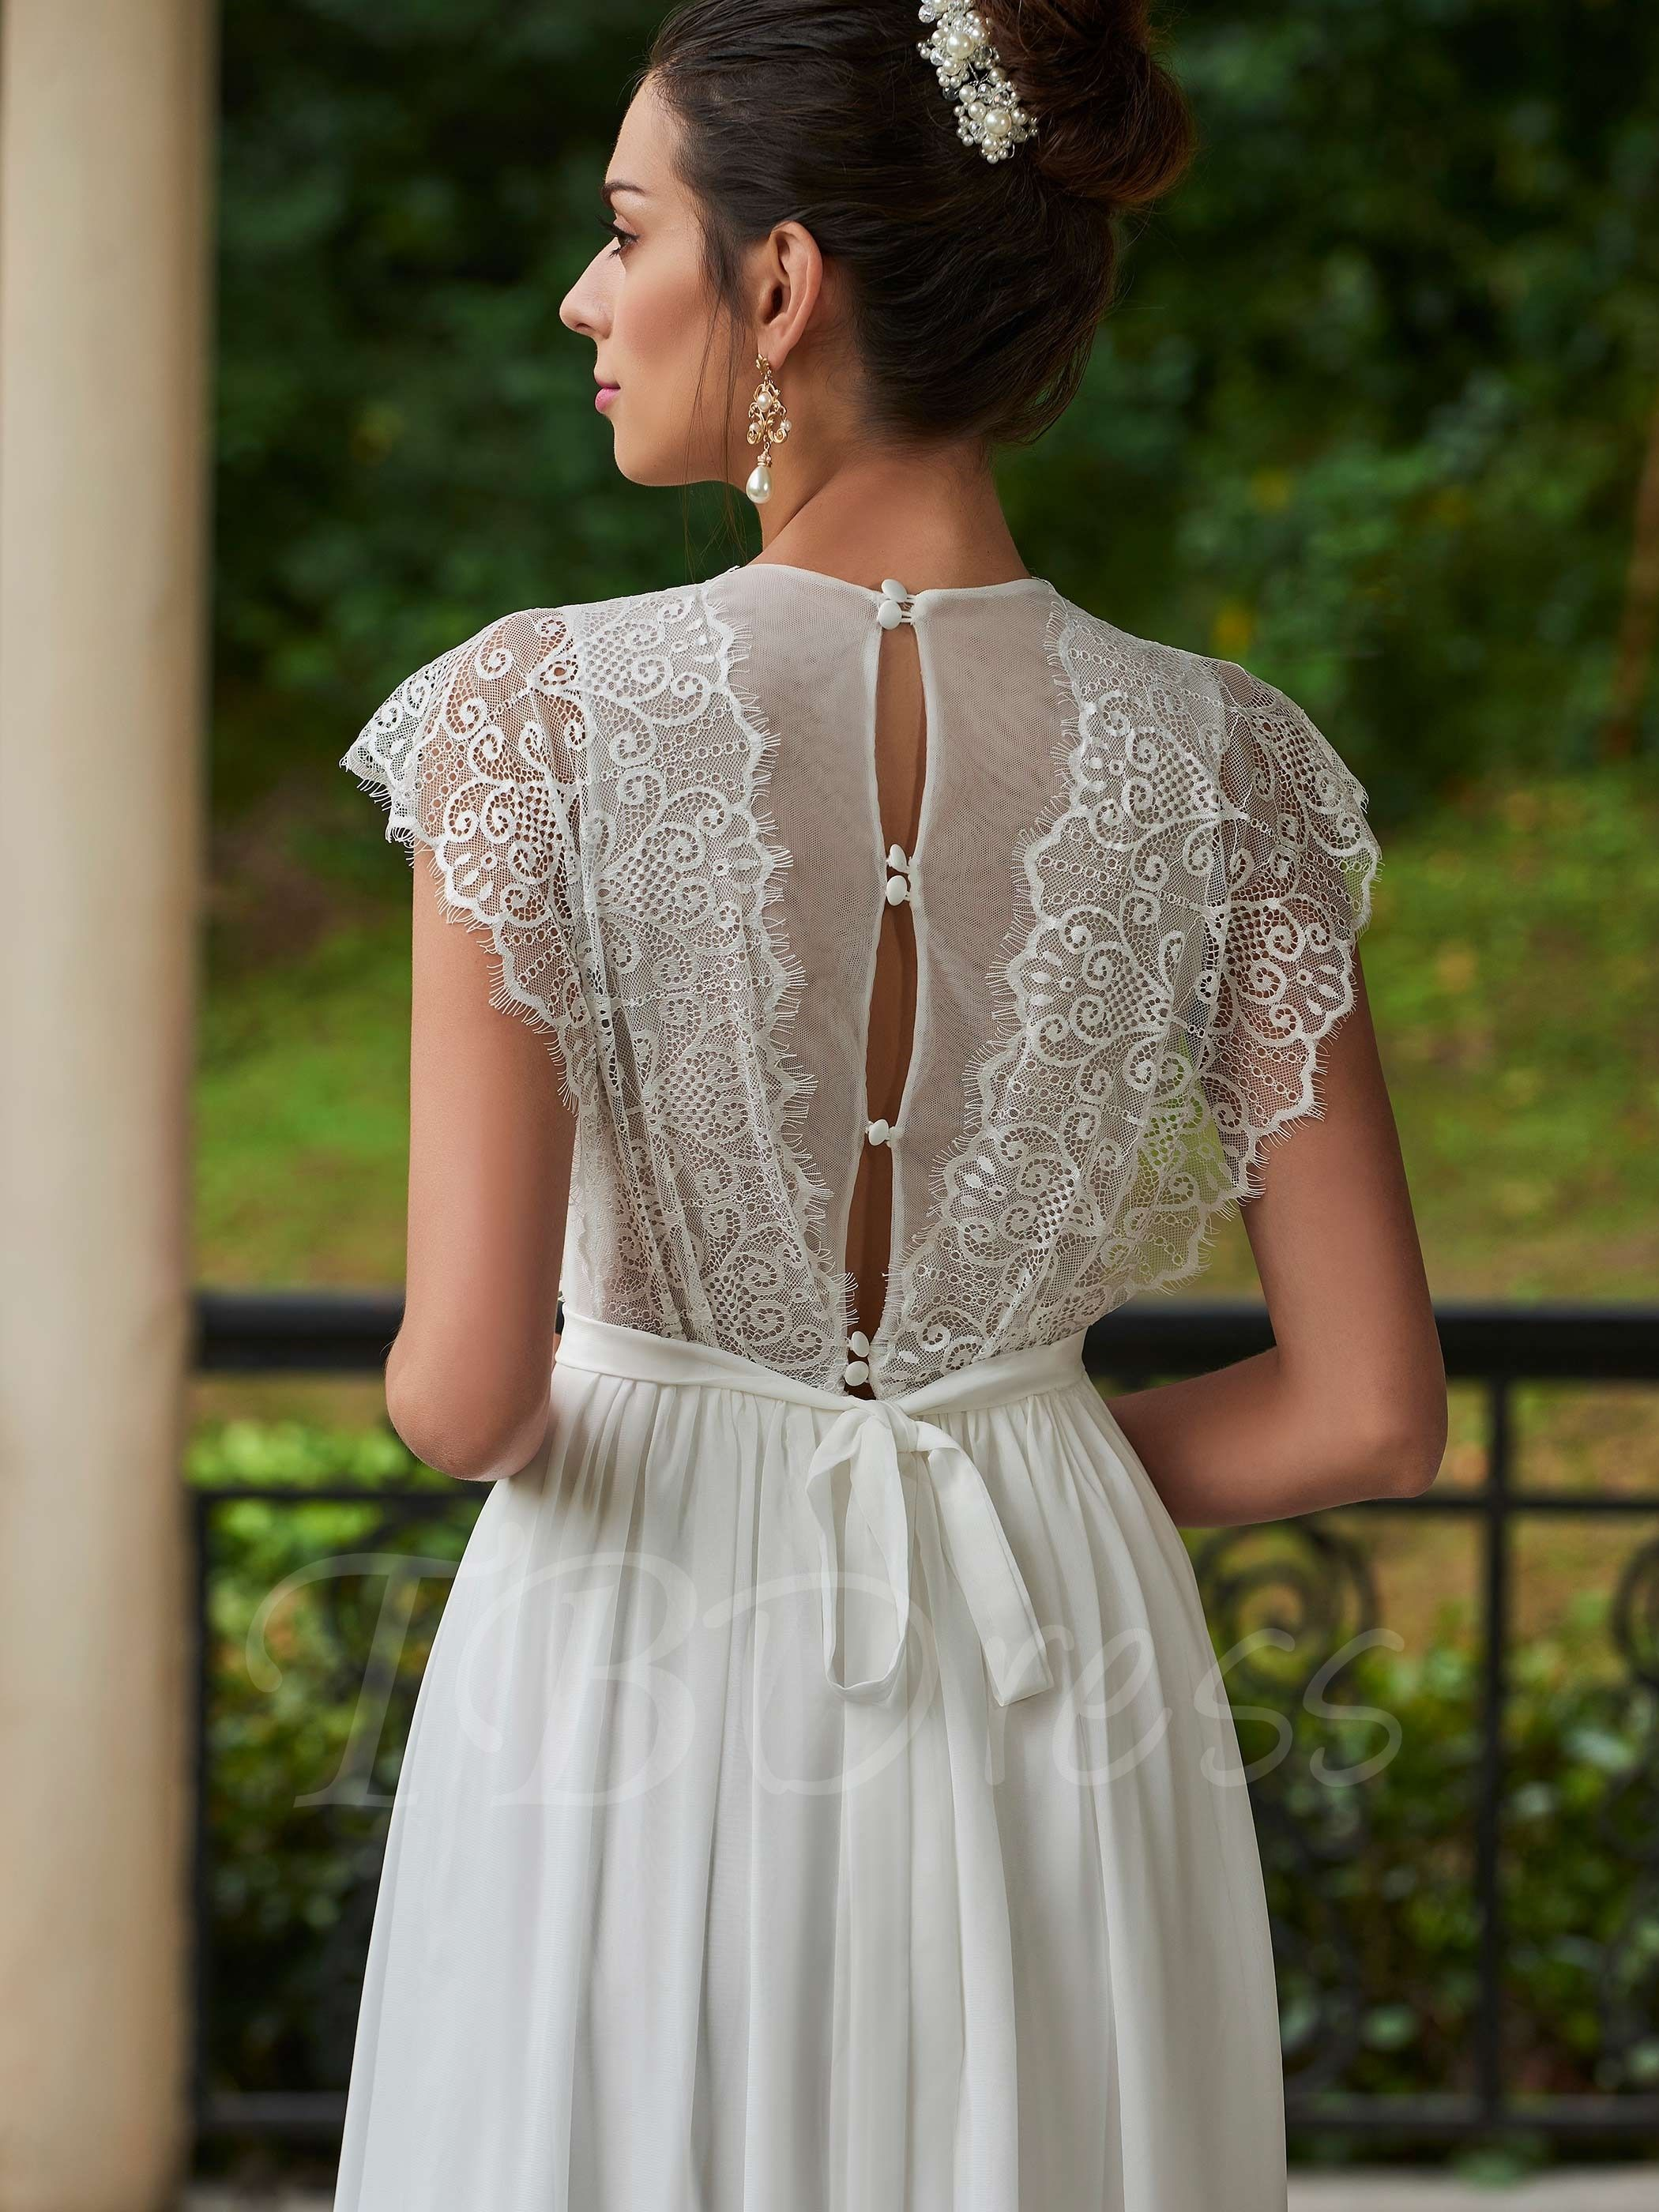 A line cap sleeve wedding dress  VNeck ALine Wedding Dress With Cap Sleeves  Wedding Dresses